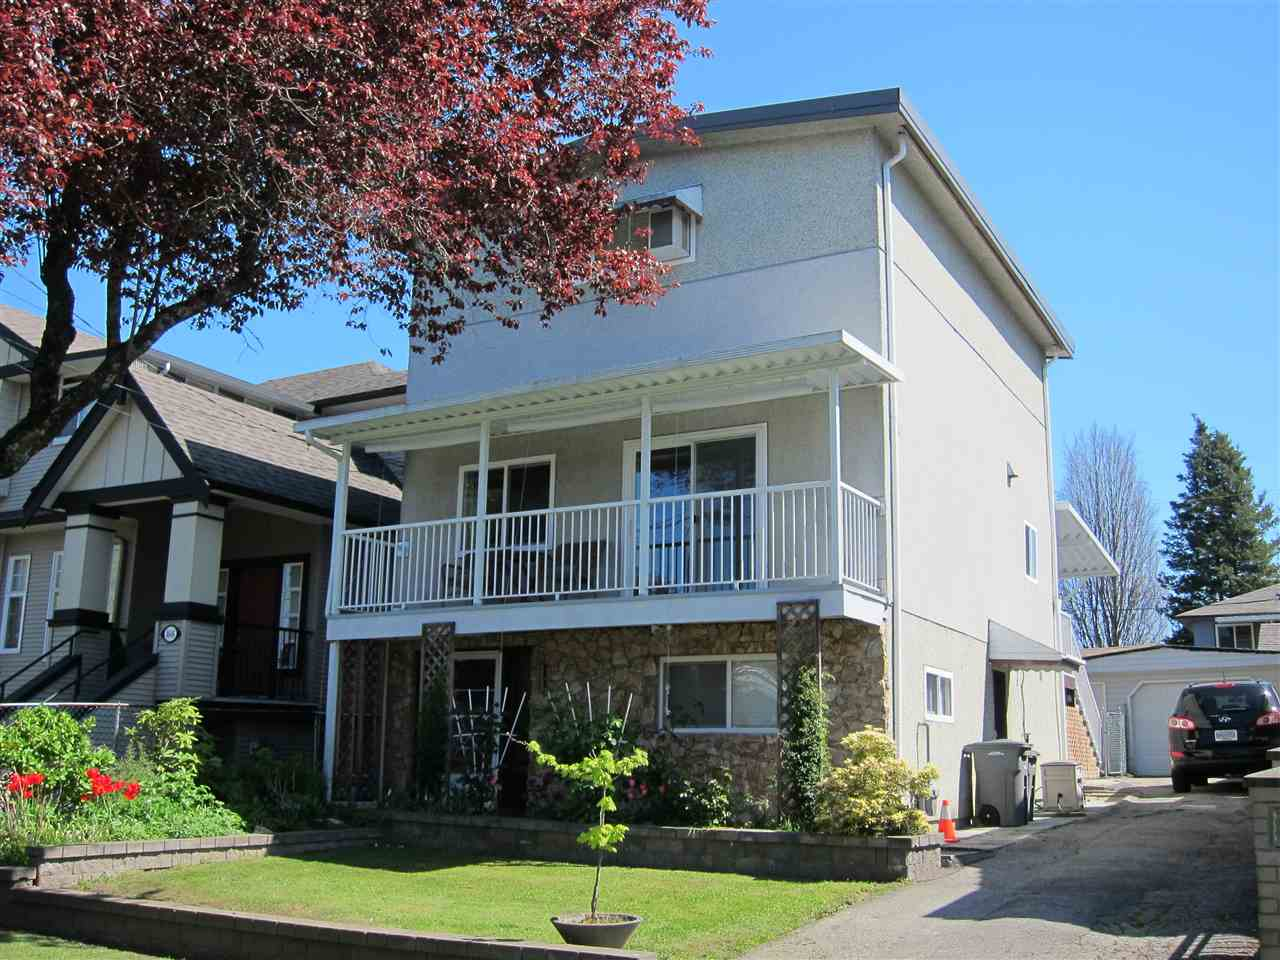 Main Photo: 4656 RAVINE Street in Vancouver: Collingwood VE House for sale (Vancouver East)  : MLS® # R2107811